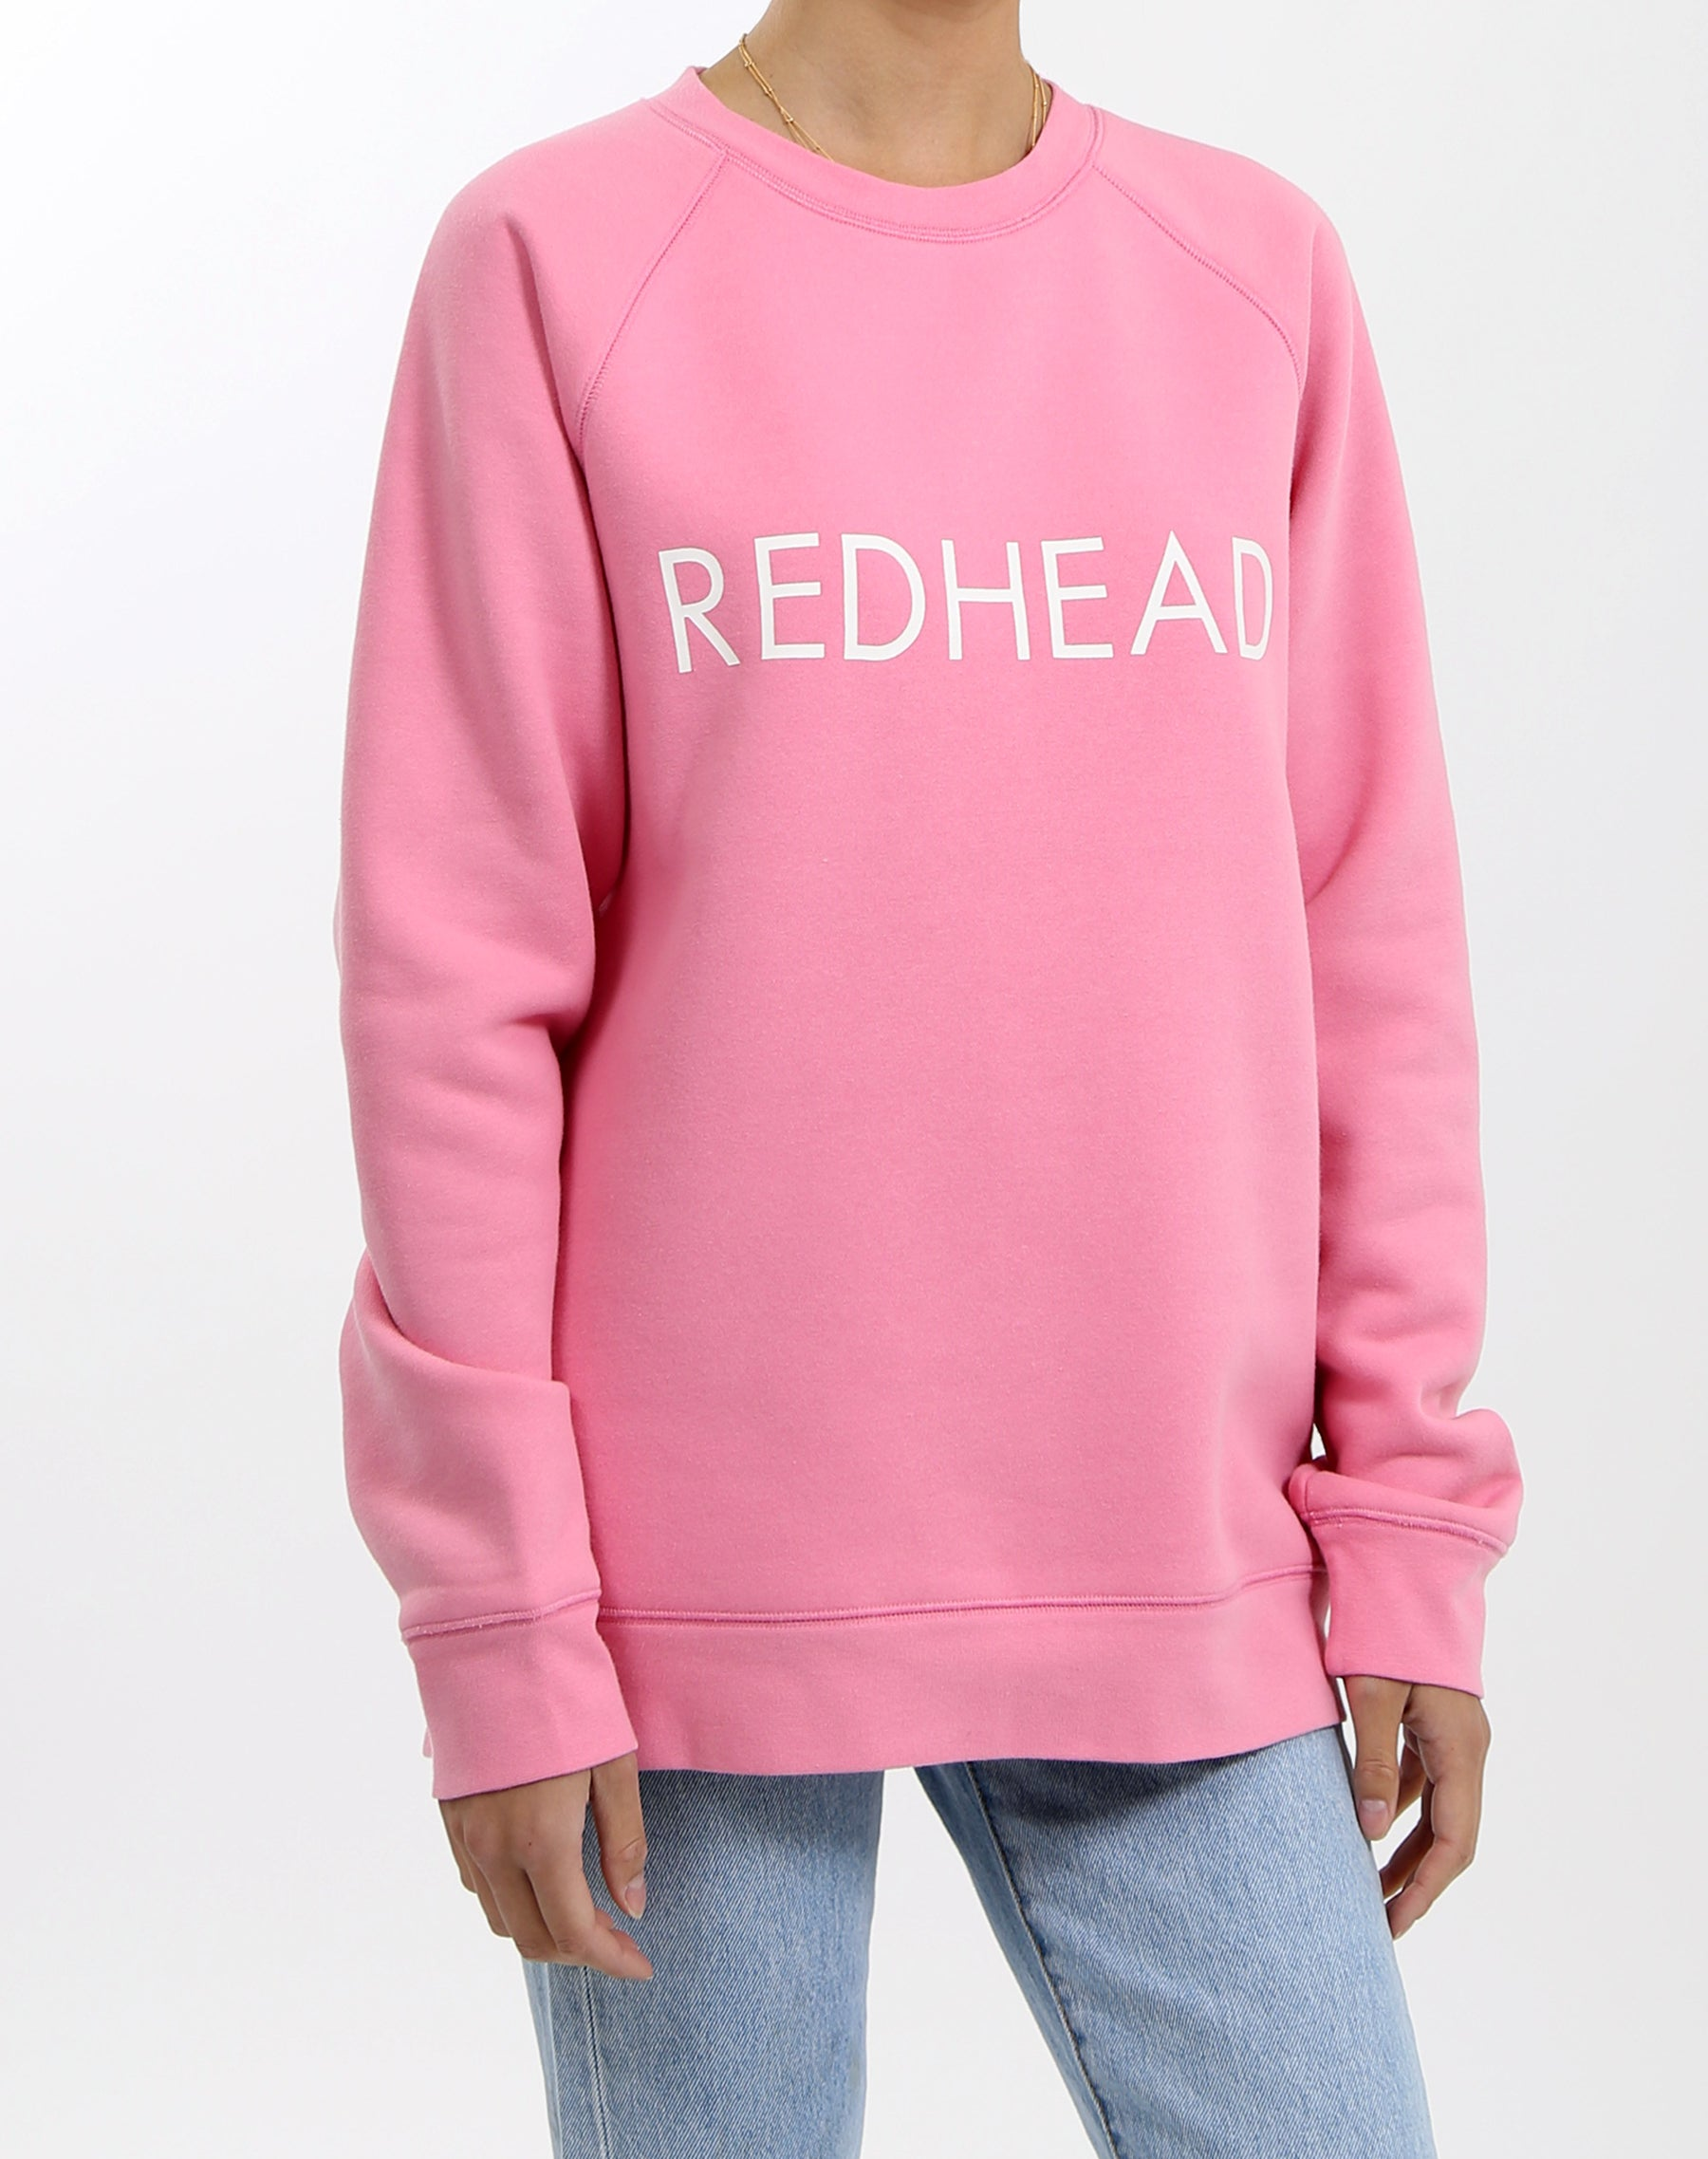 Photo 2 of the Redhead classic crew neck sweatshirt in hot pink by Brunette the Label.